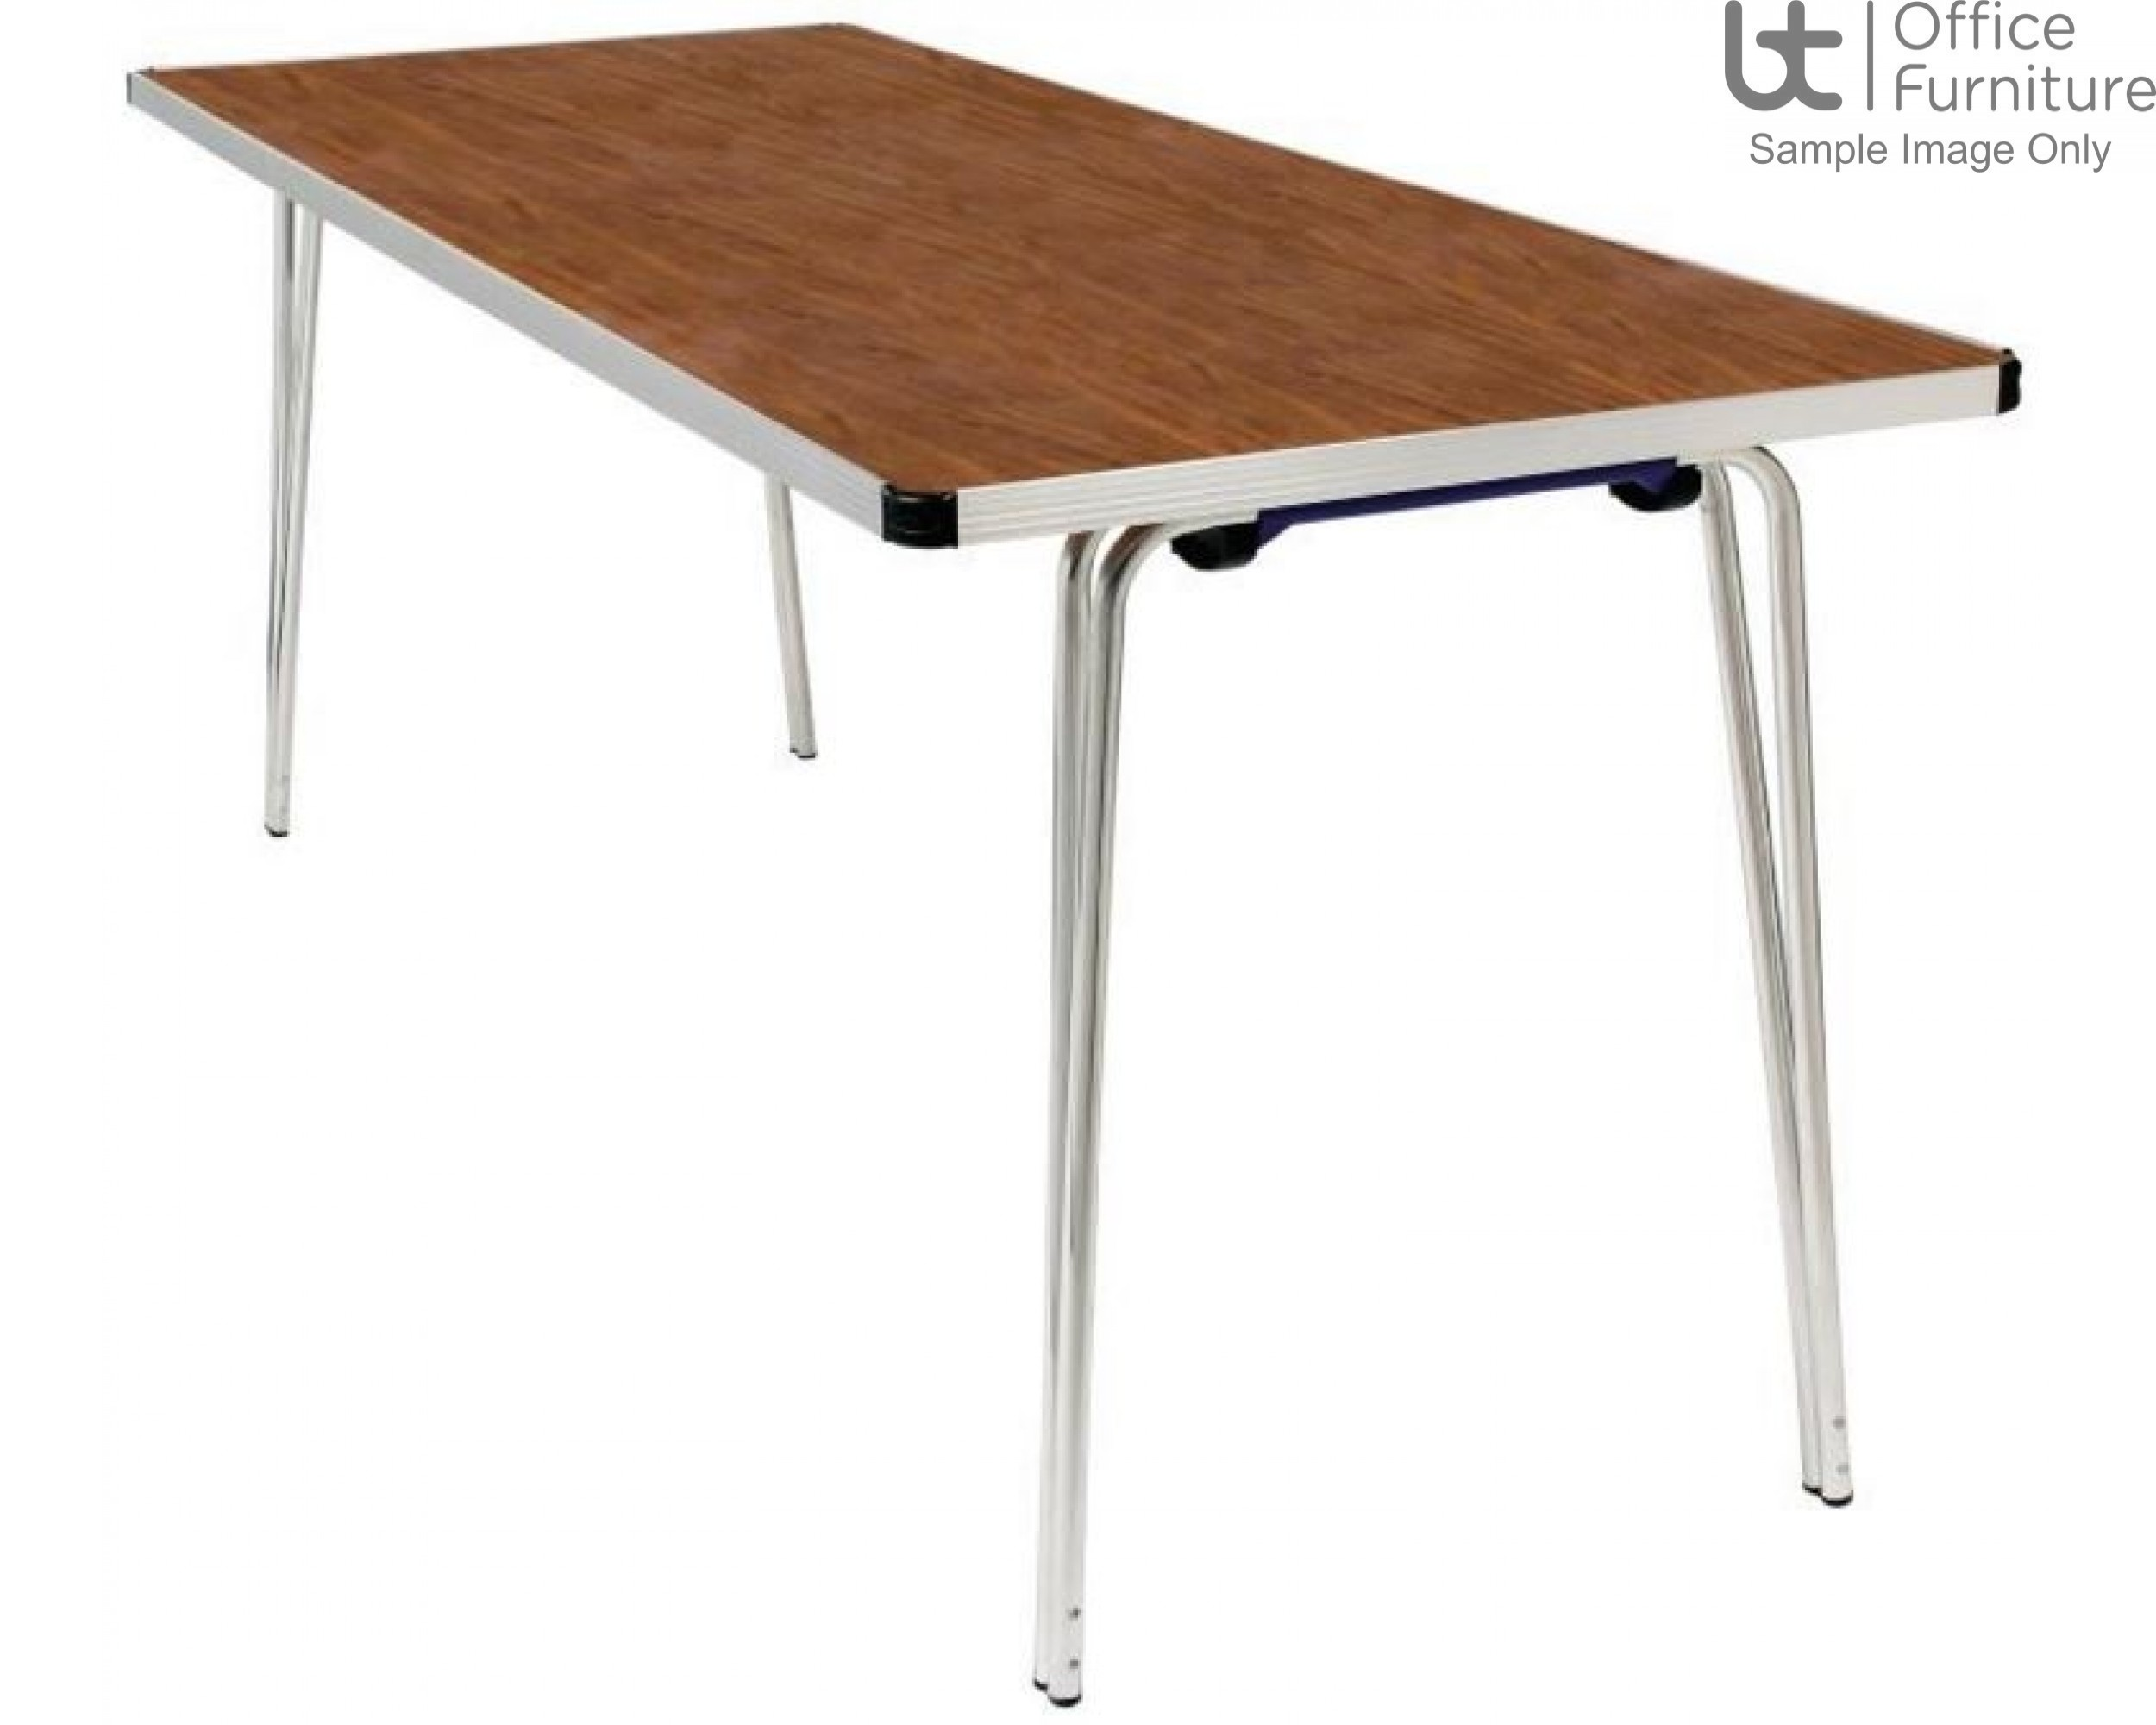 Contour Dining/Cafeteria/Canteen Folding Tables - 915mm Wide